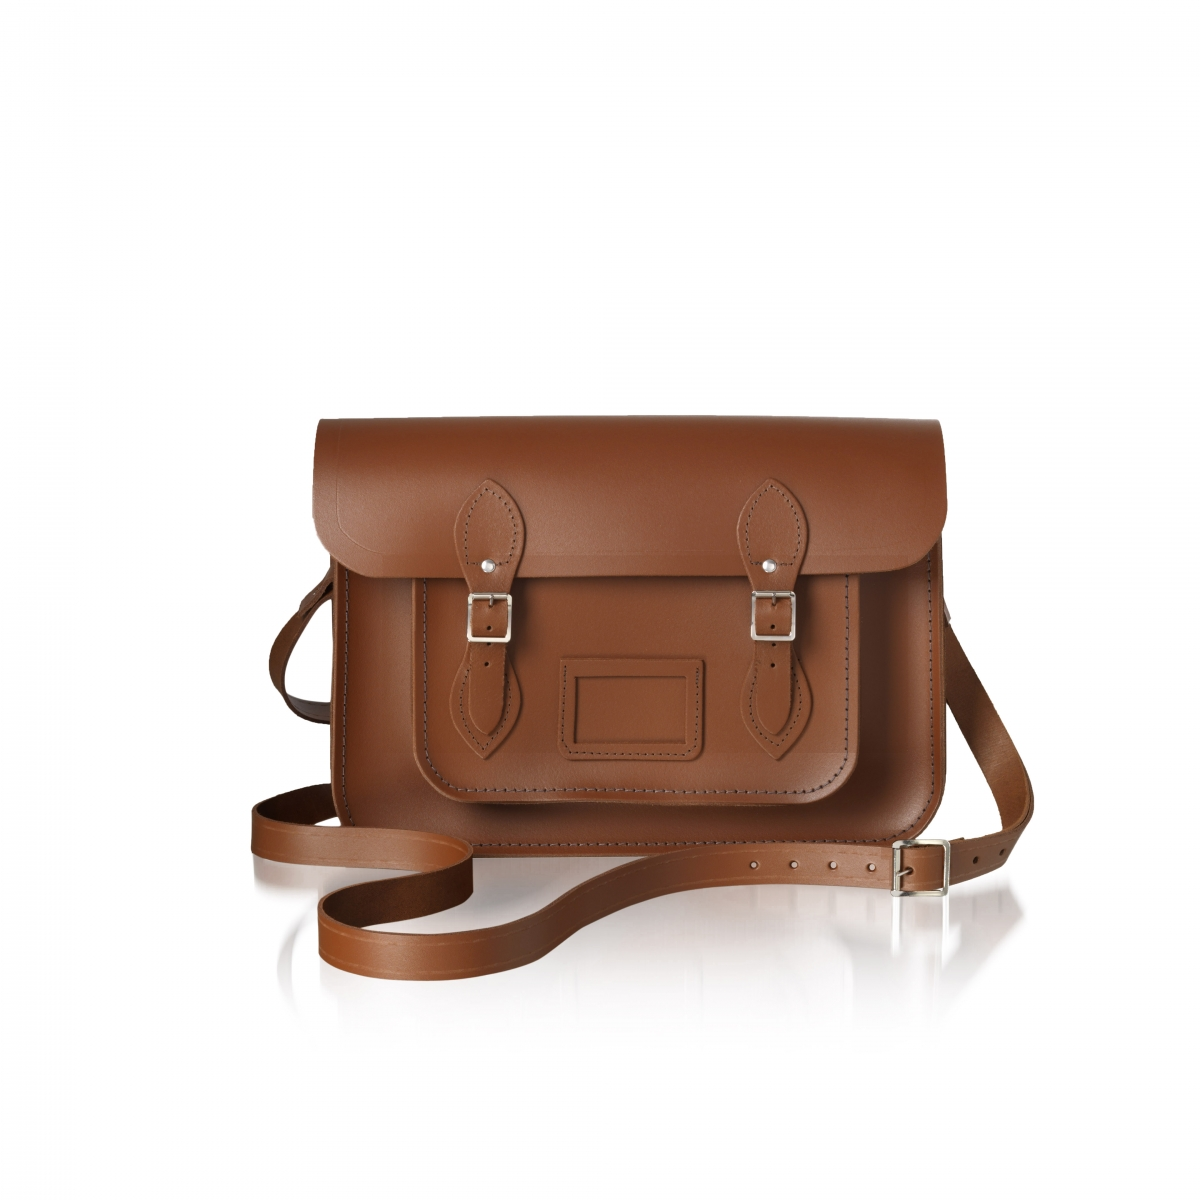 The Cambridge Satchel Company now having over 100 employees and sells to more than 100 countries across the globe